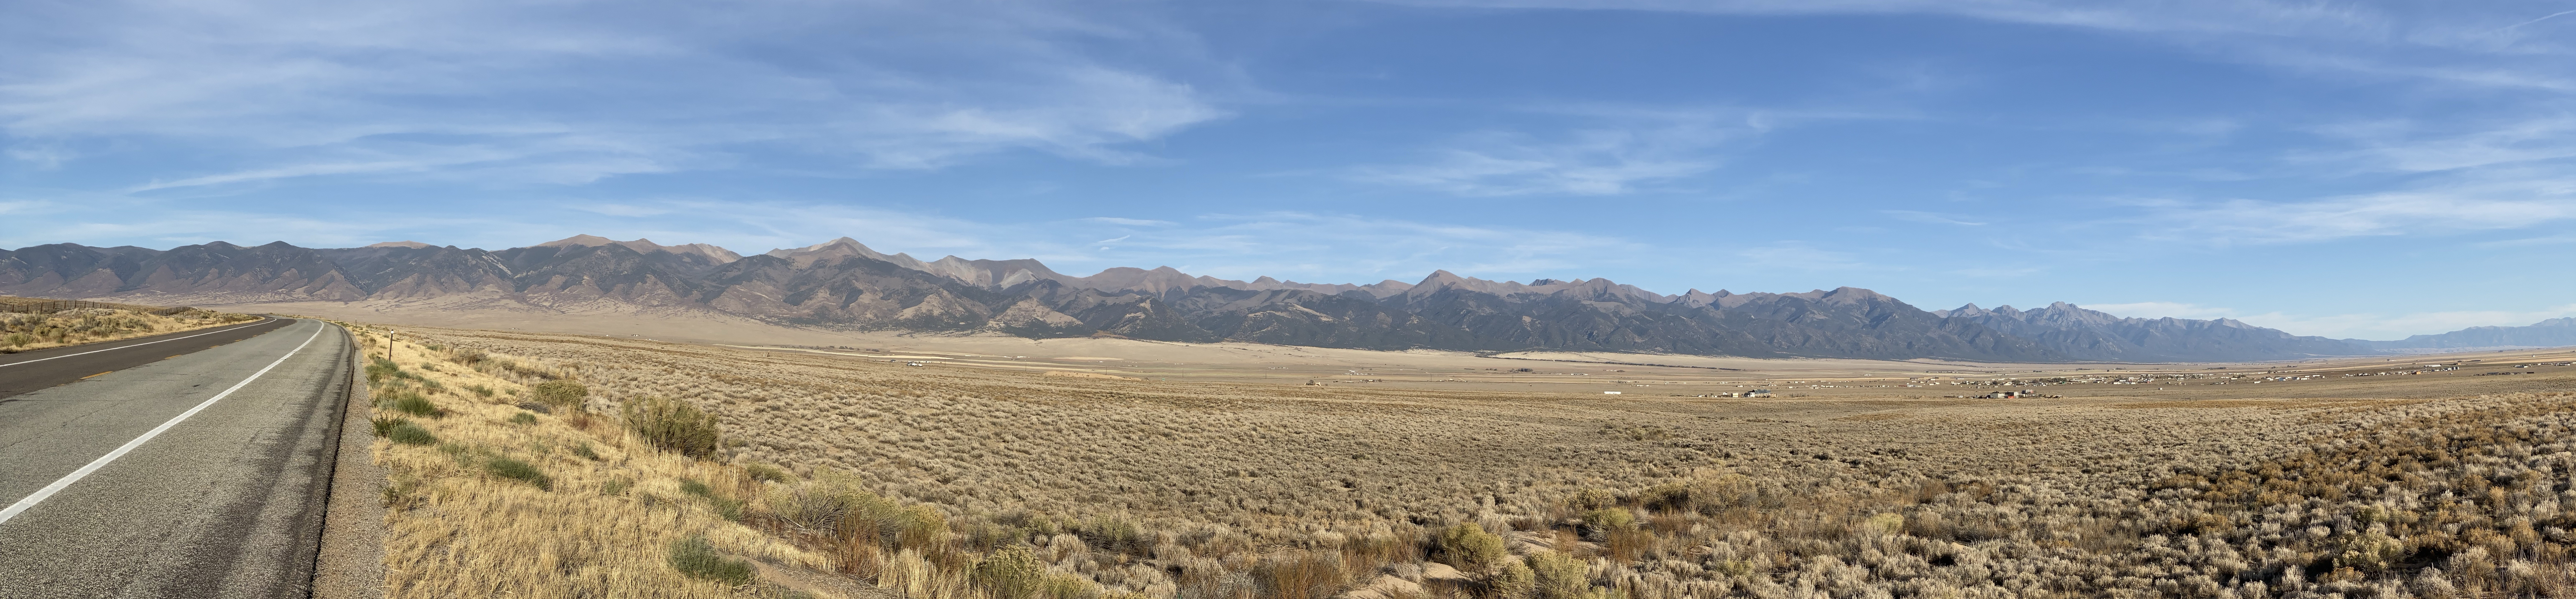 Yet another mountain vista east of Saguache on US285.